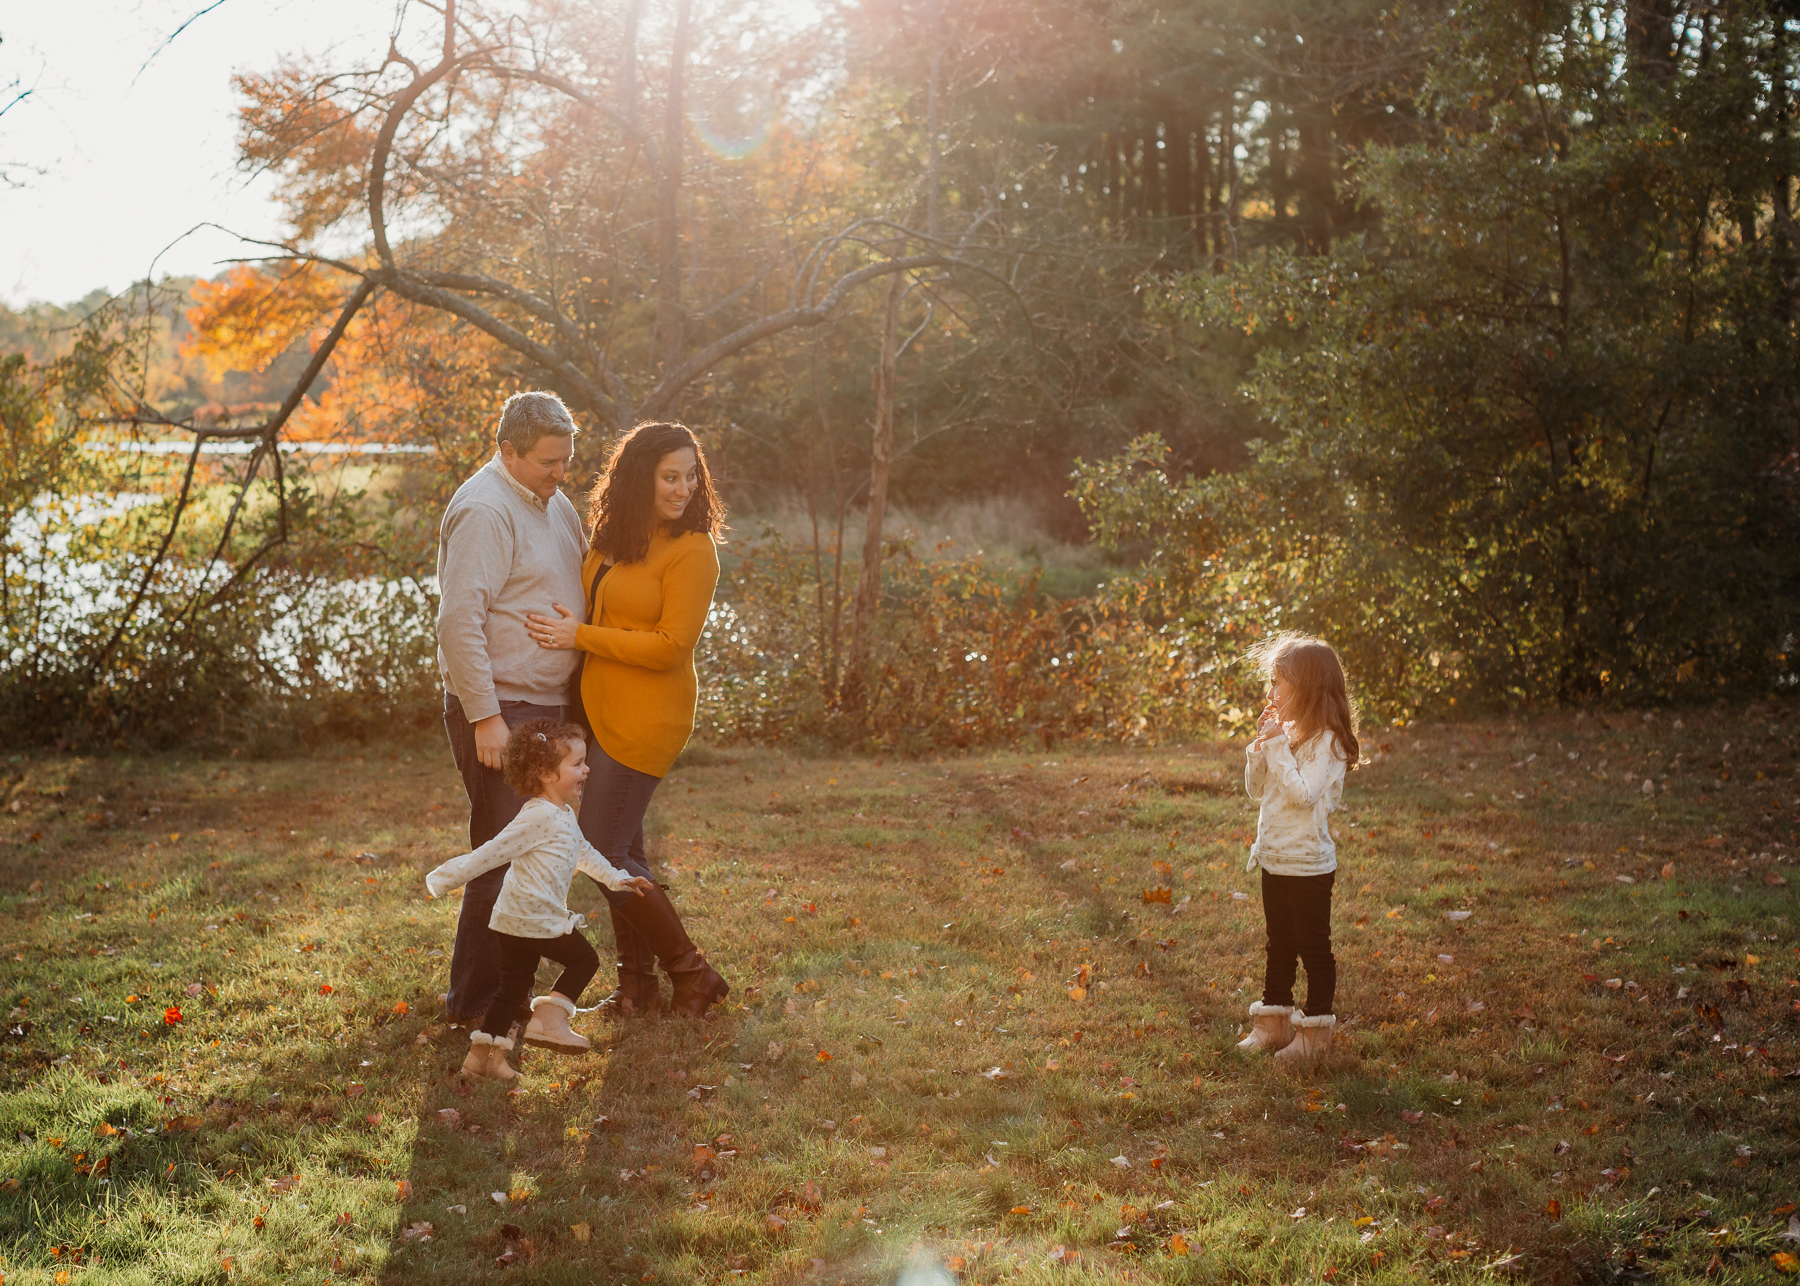 Does your child hate having their photo taken? The best tips for keeping anxious kids happy during family portraits. Boston family photographer Joy LeDuc.